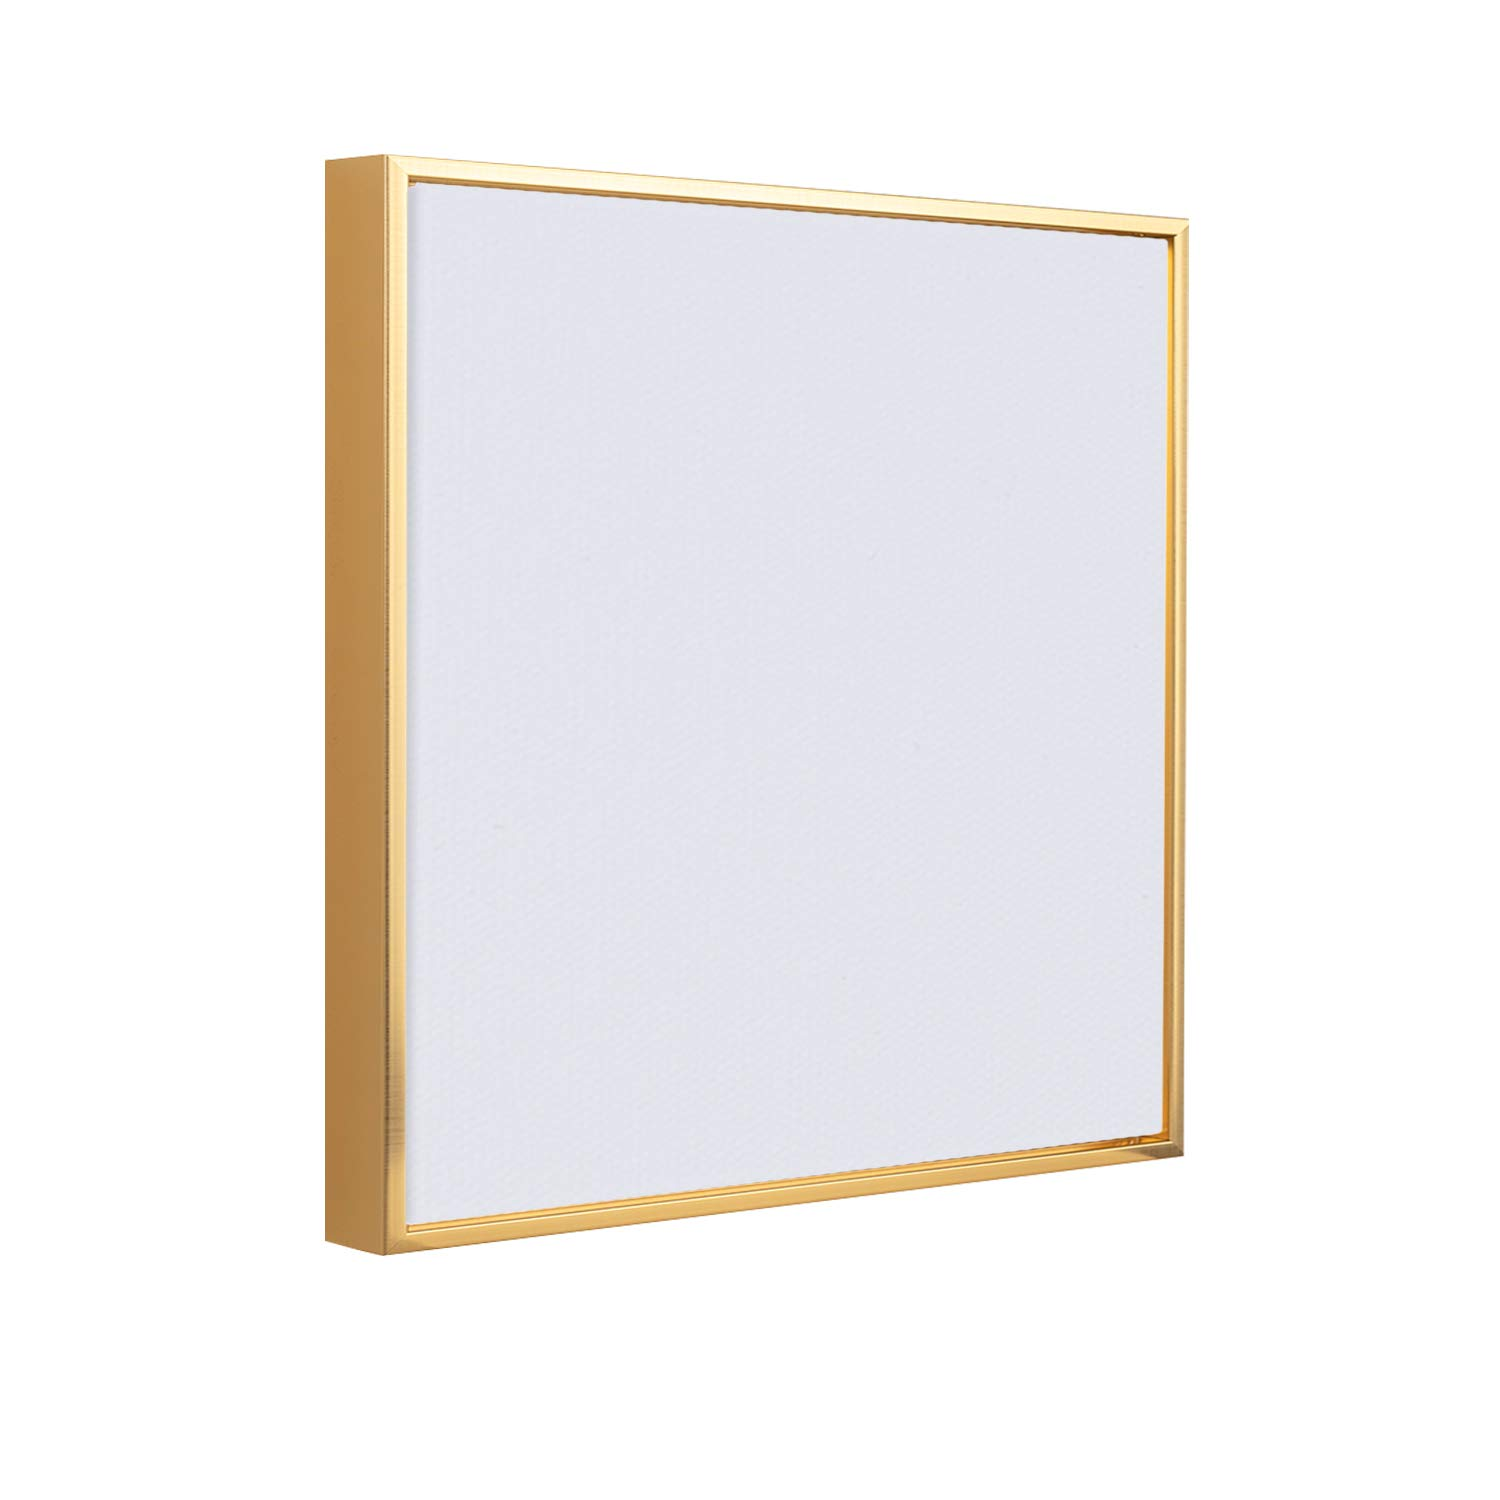 Square Floater Frame + Stretched Canvas for Painting | 1-3/8'' Thick Frame + 3/4'' Deep Canvas | 11 oz Premium Canvas Fabric | 100% Natural Non Primed Cotton (Brass Gold, 14 x 14 inch)